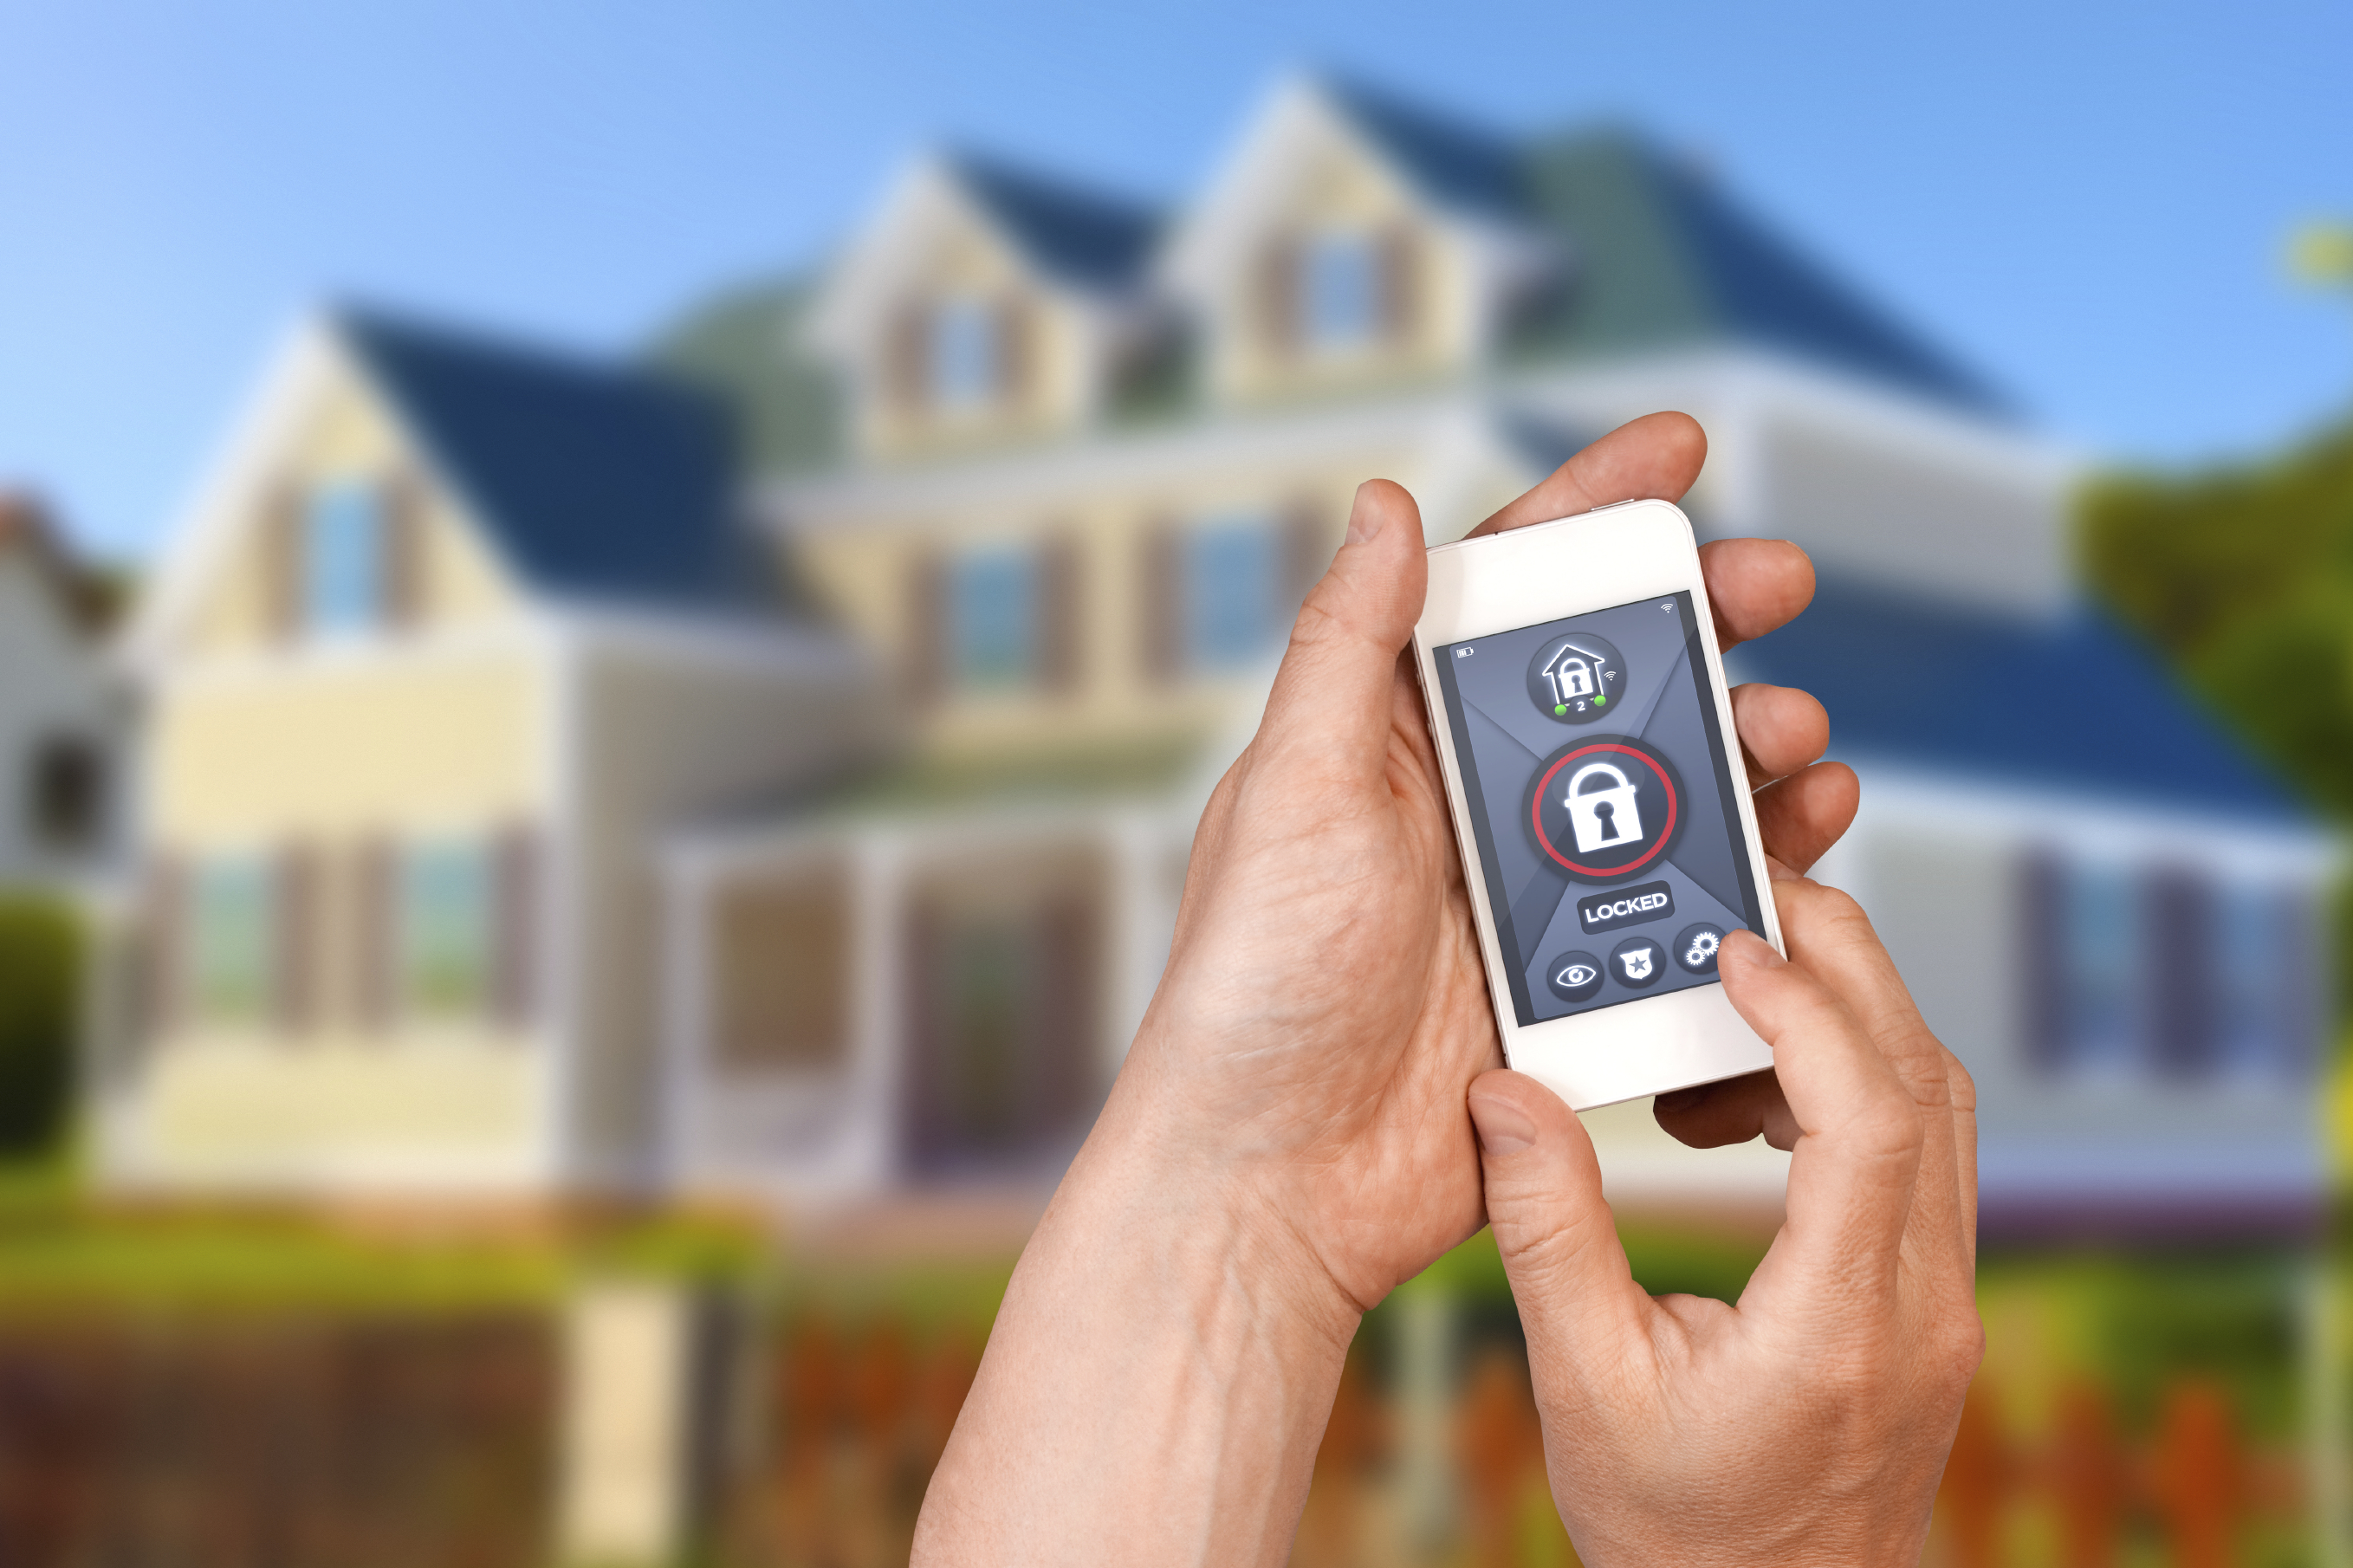 Home Security Solutions Market